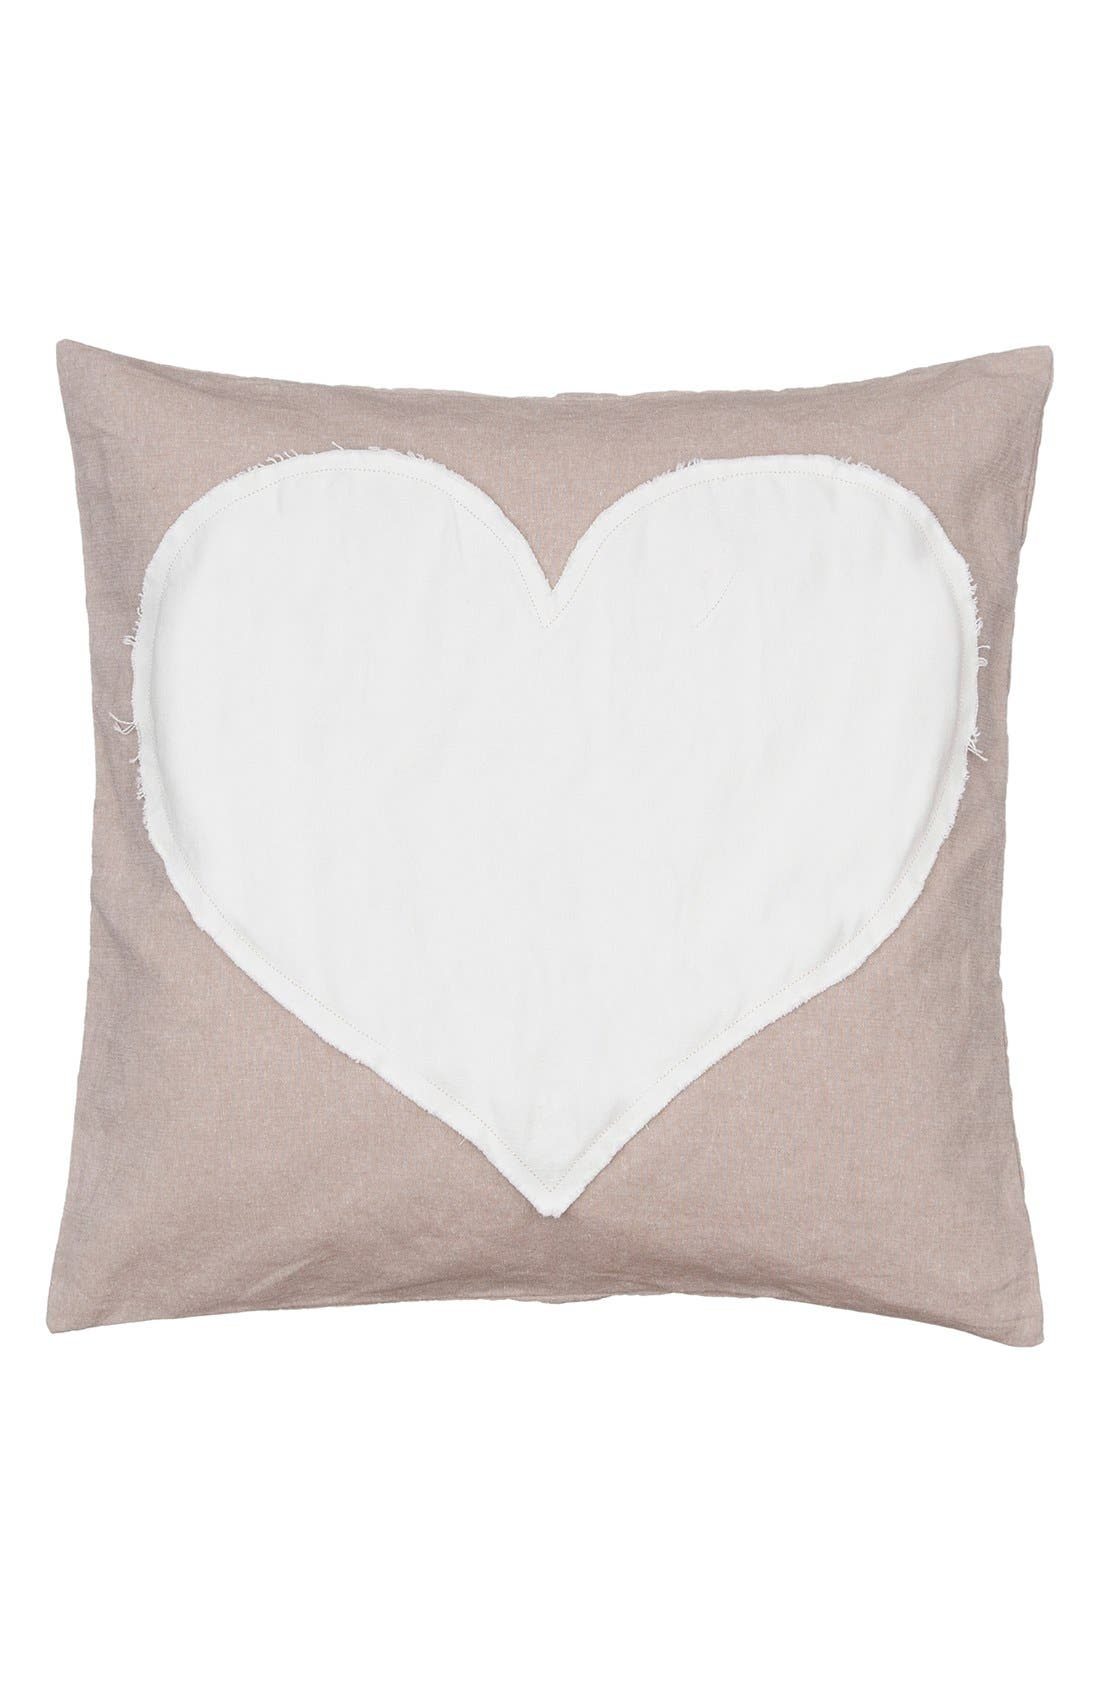 Alternate Image 1 Selected - Levtex Heart Accent Pillow